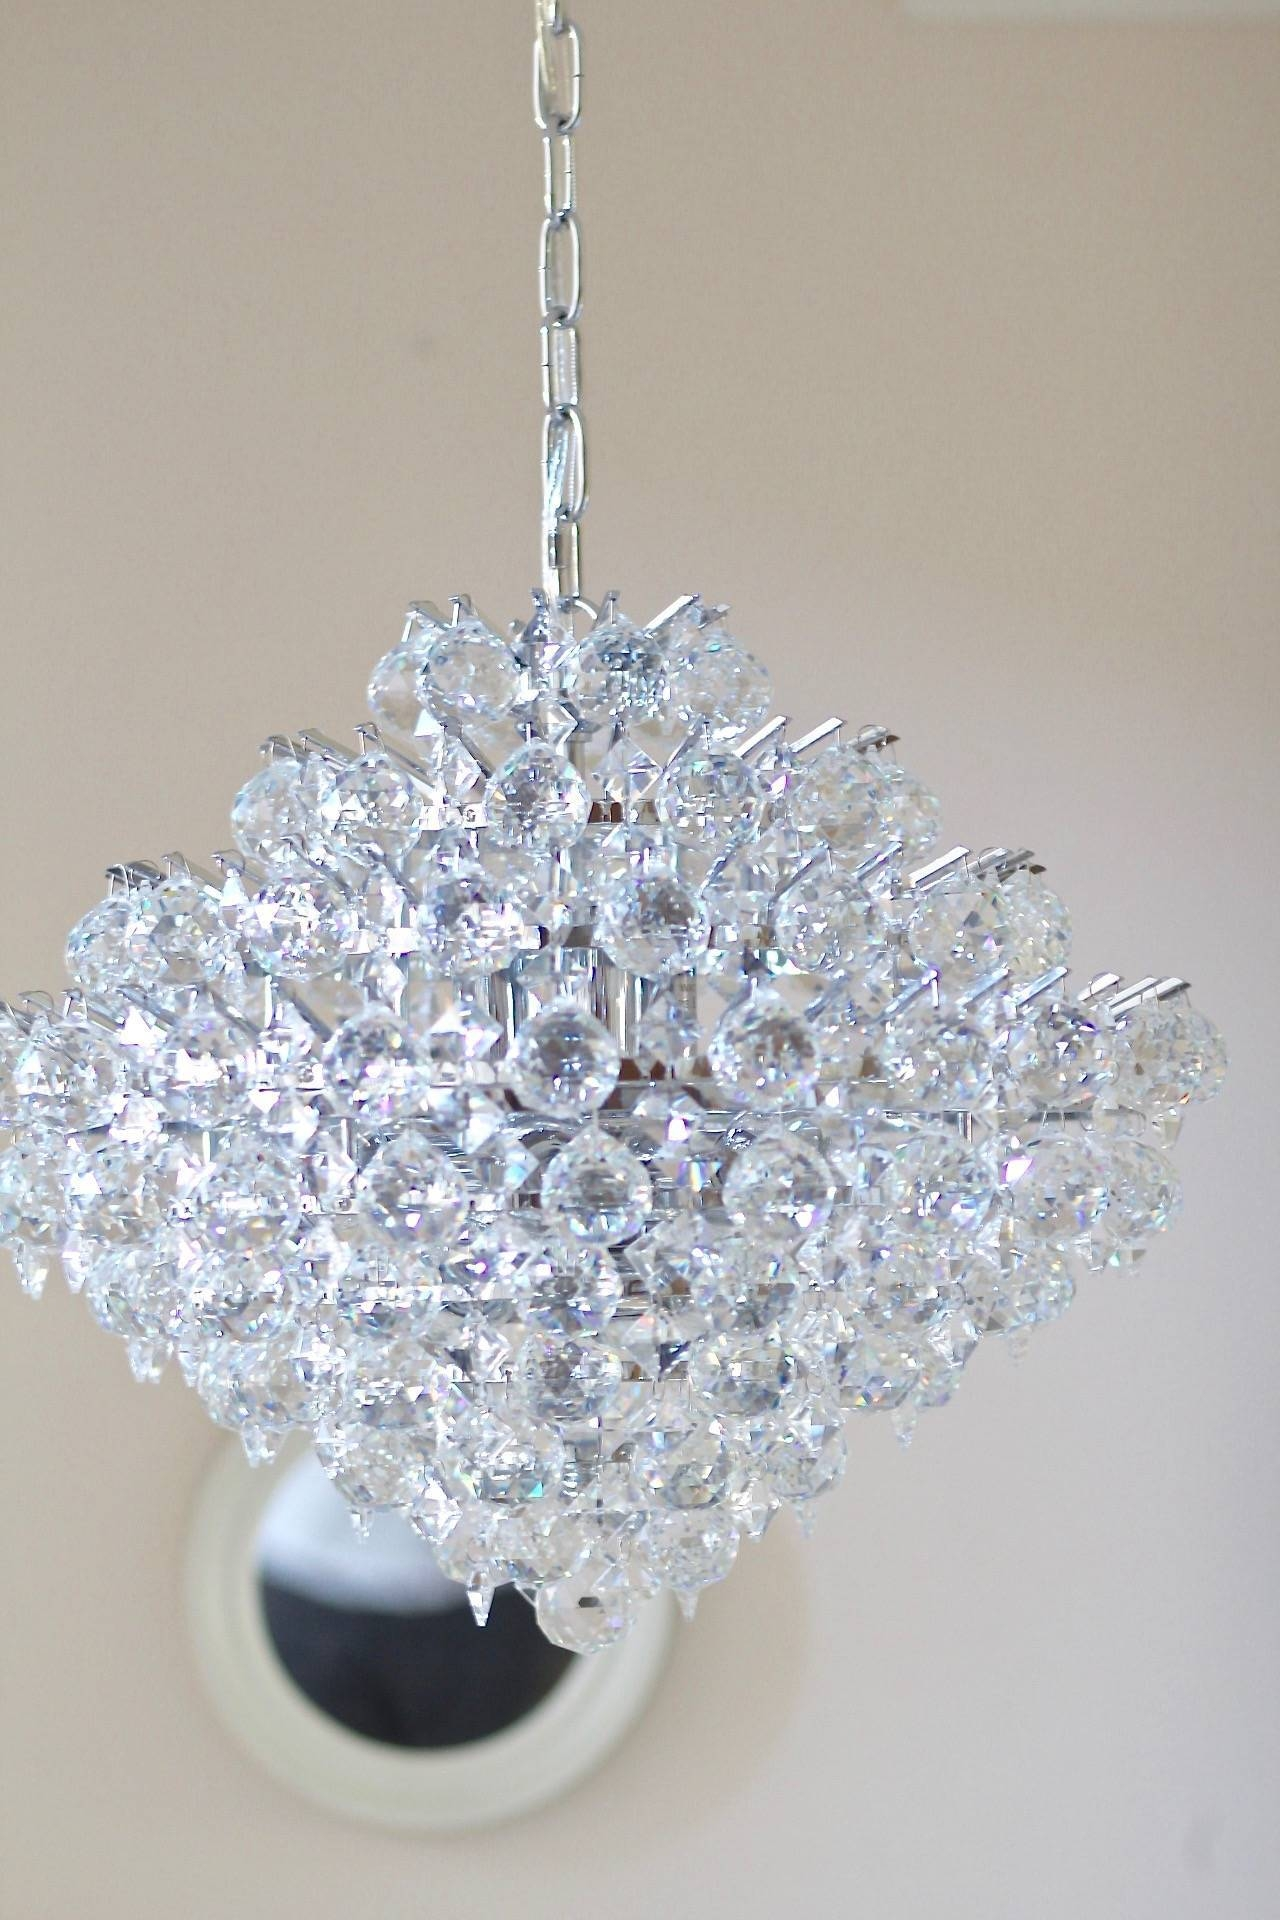 Chandelier Dreams With Lamps Plus Foofafi With Sparkly Chandeliers (Image 7 of 25)